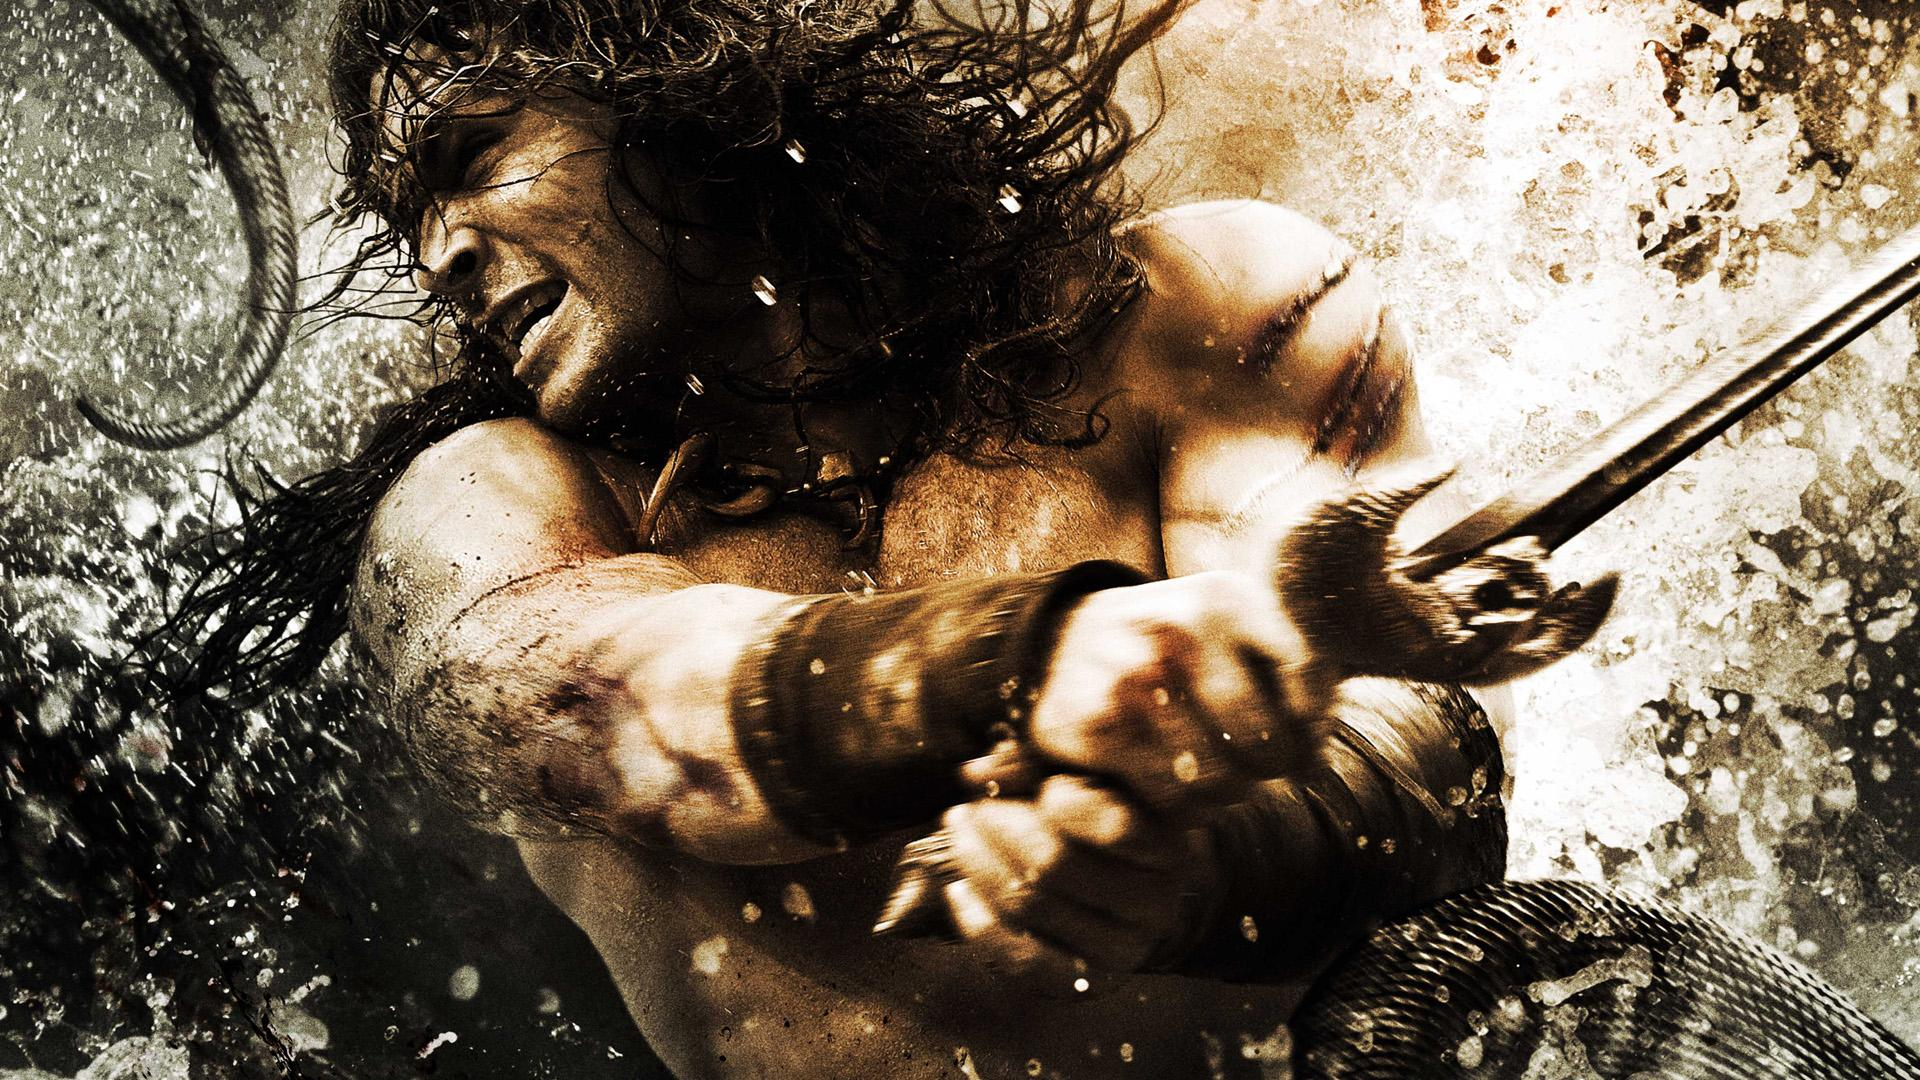 Conan The Barbarian (2011) Wallpaper HD Download